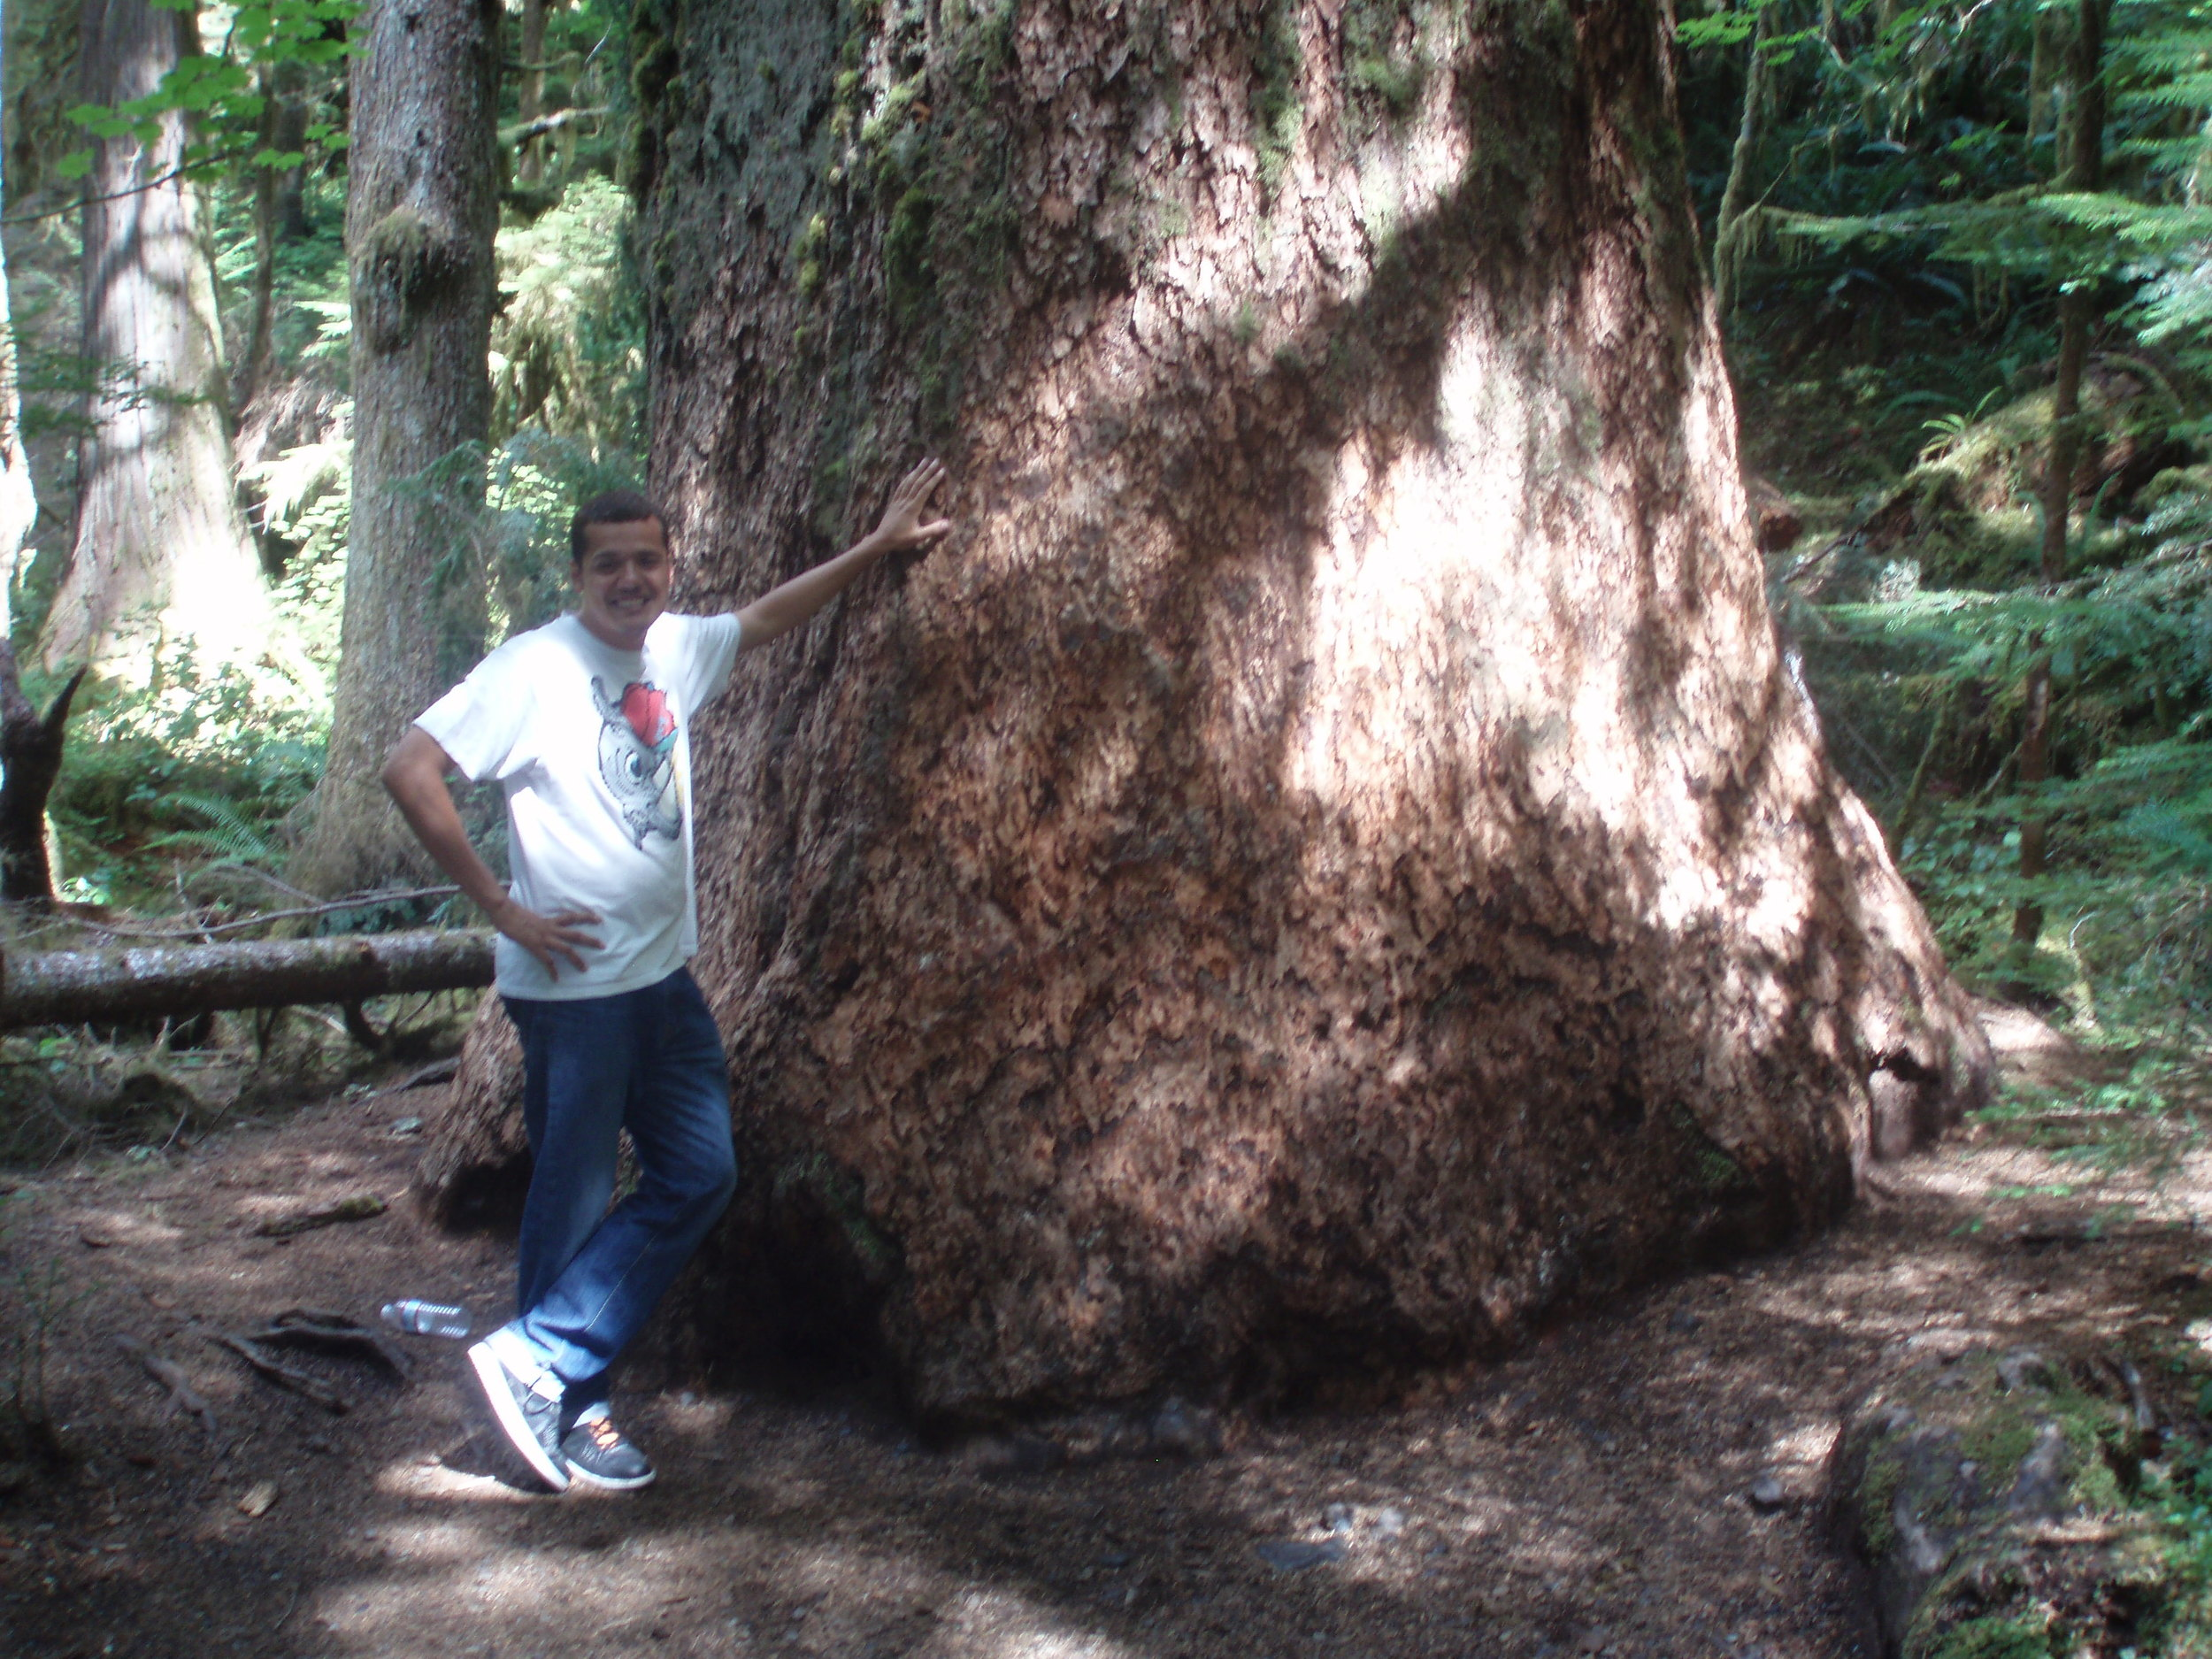 Largest spruce tree near Quinault Lake, Olympic Peninsula